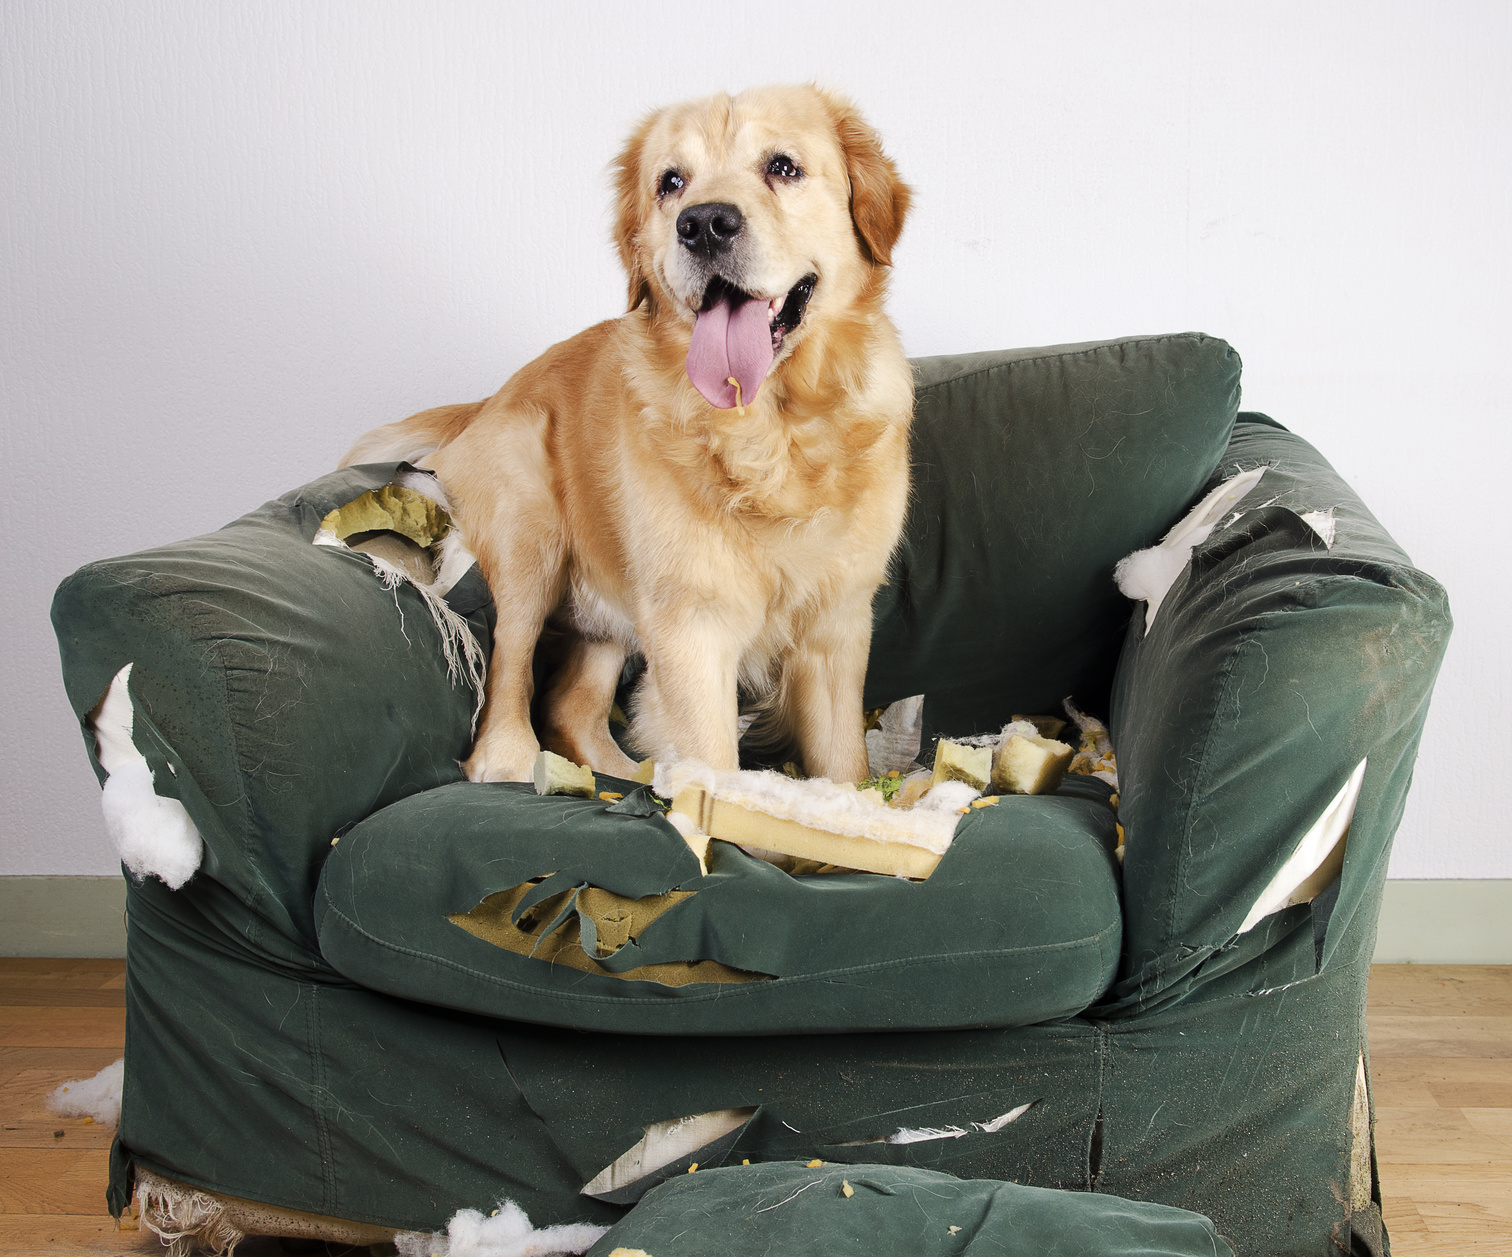 Dog on chewed up chair - Separation anxiety in dogs